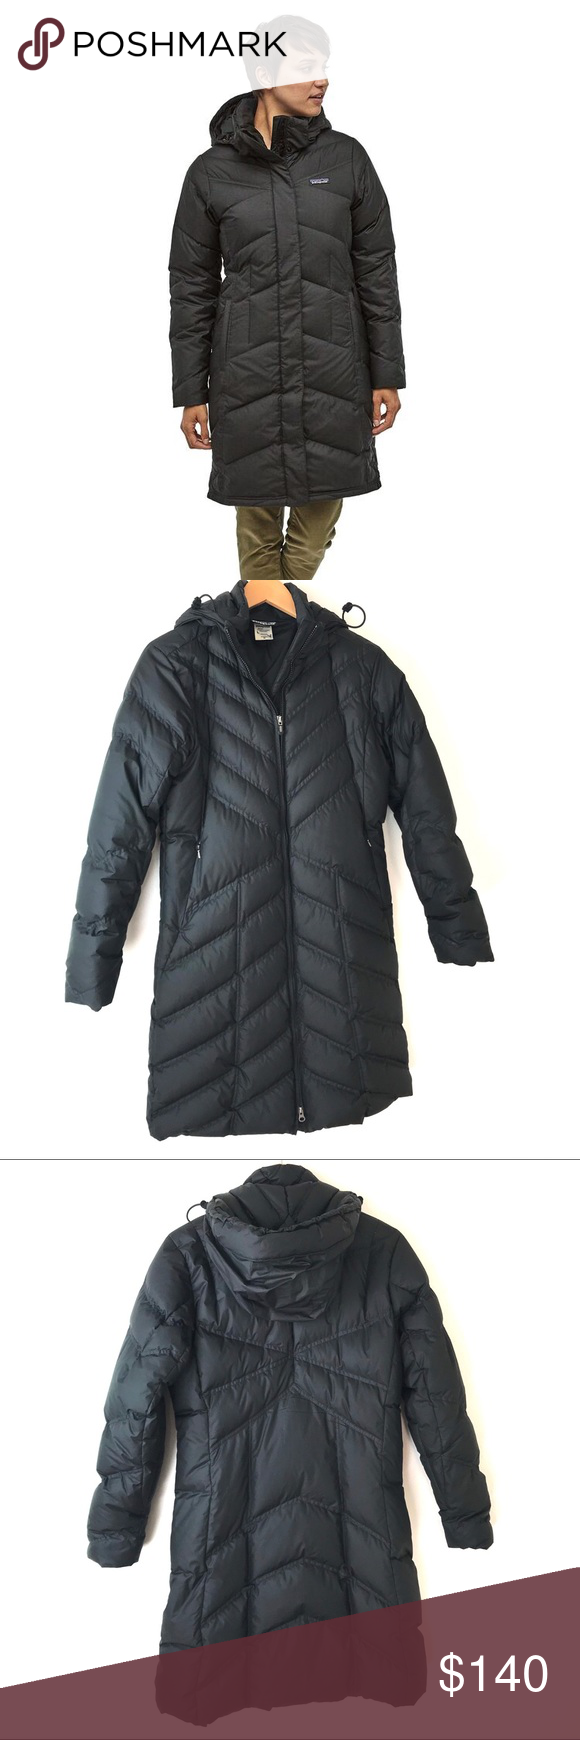 Patagonia With It down hooded long puffer jacket Puffer